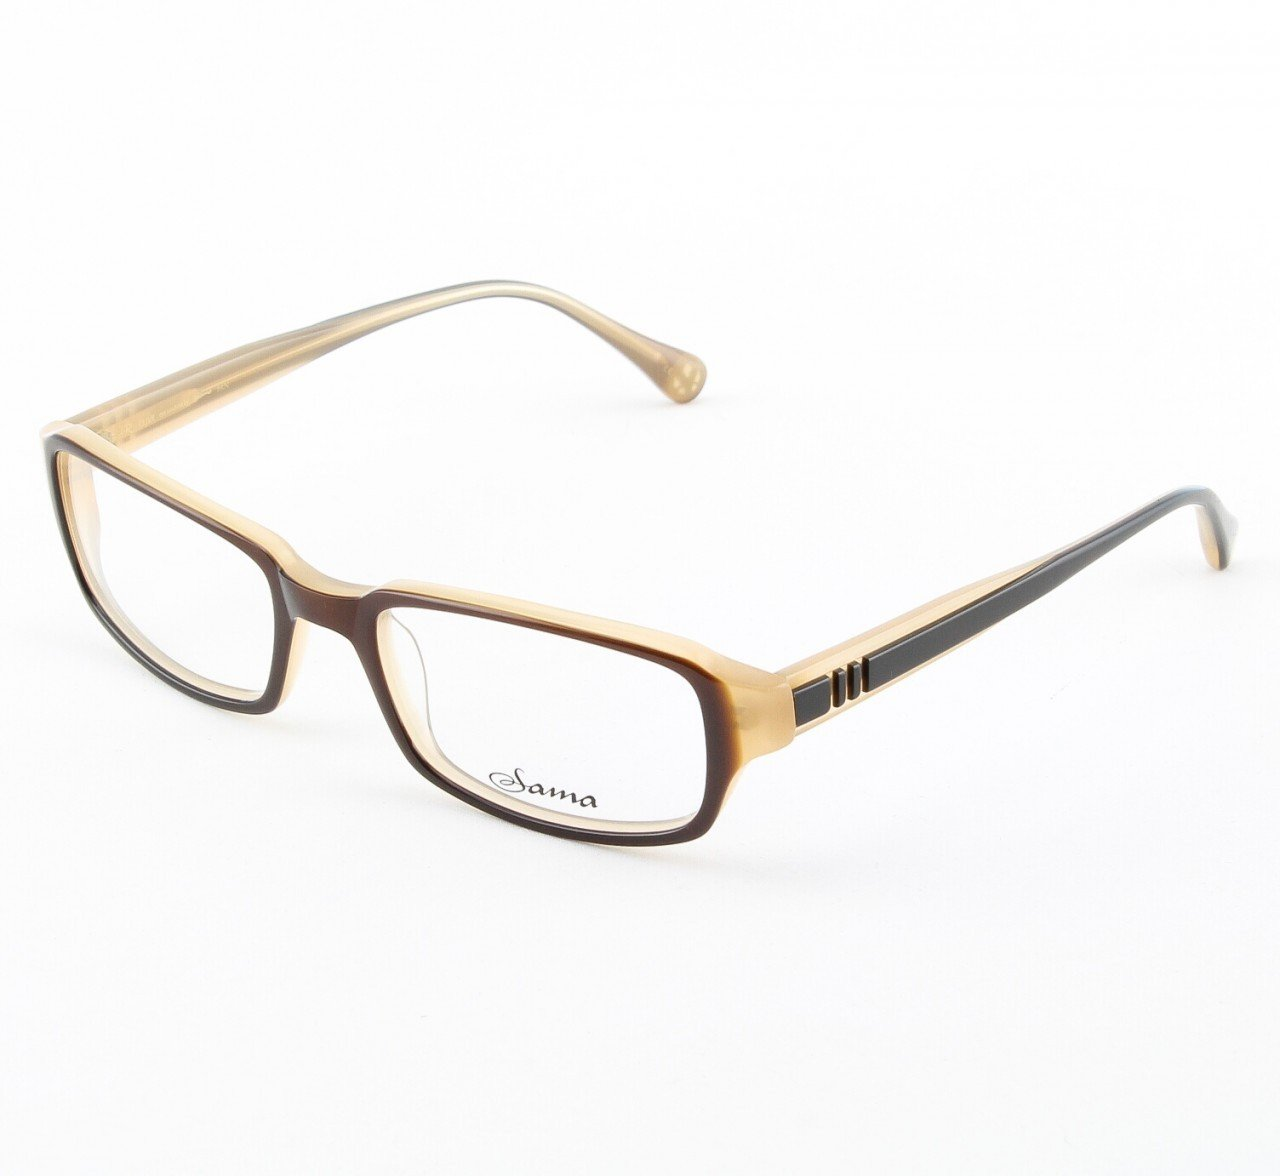 Loree Rodkin Clive Eyeglasses by Sama Col. Brown and Cream with Clear Lenses